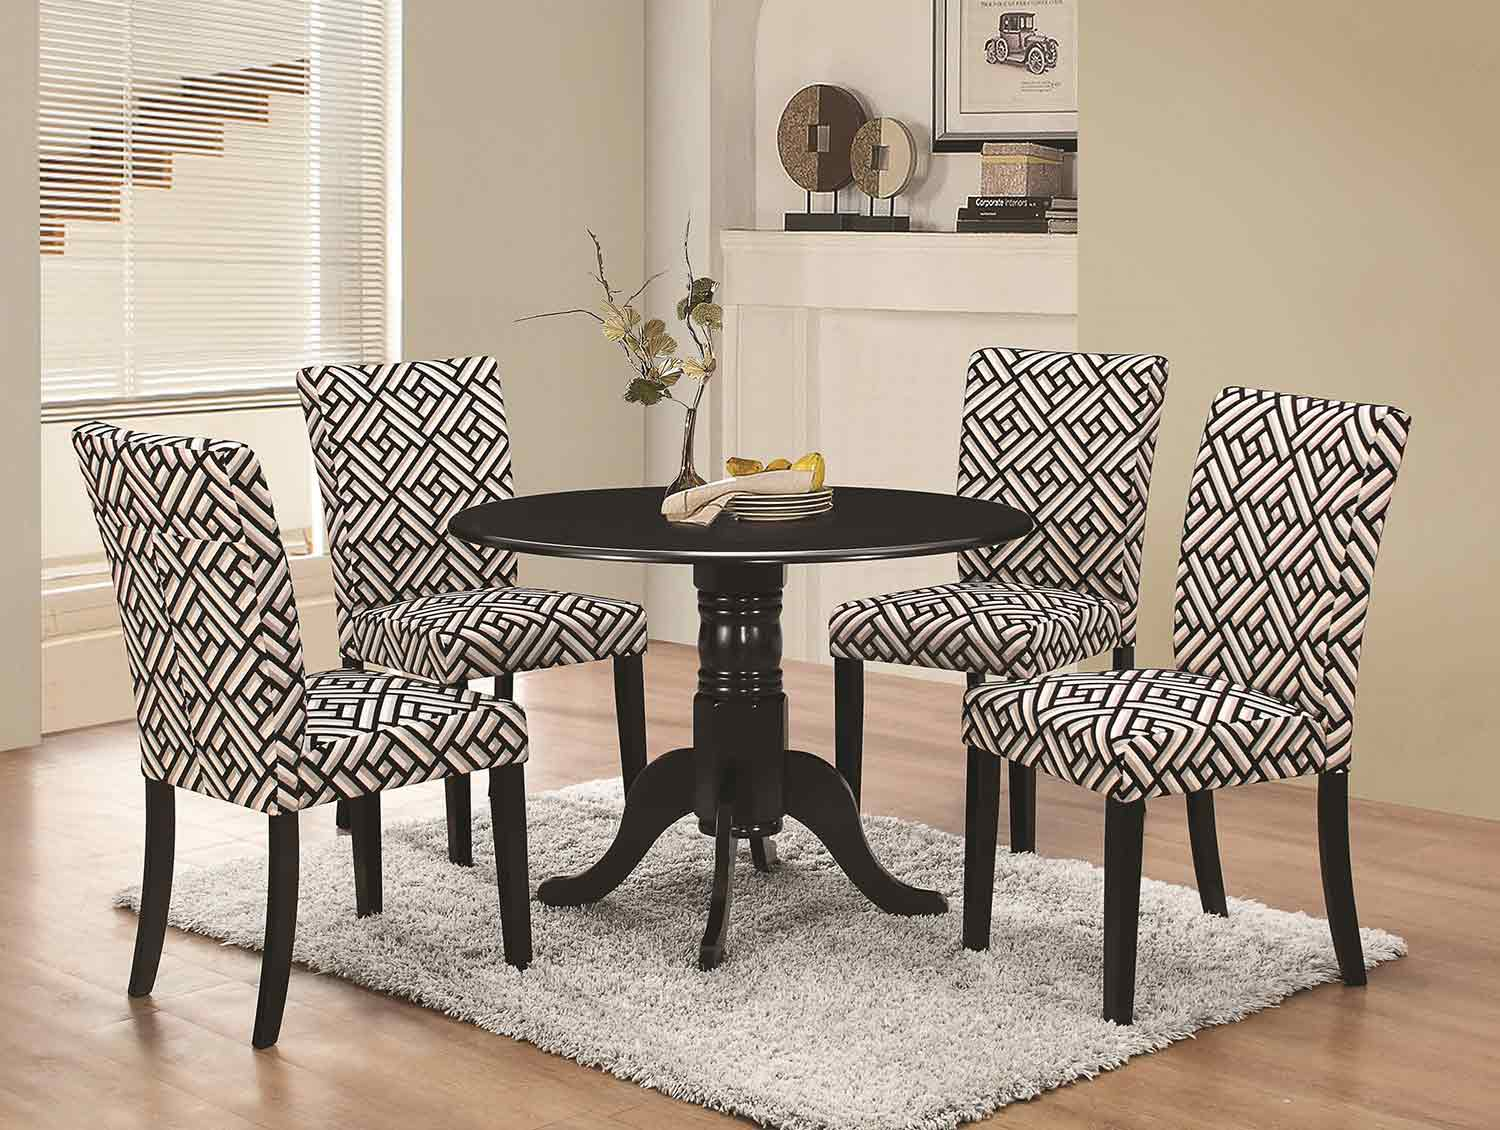 Coaster Dorsett Round Dining Set - Black